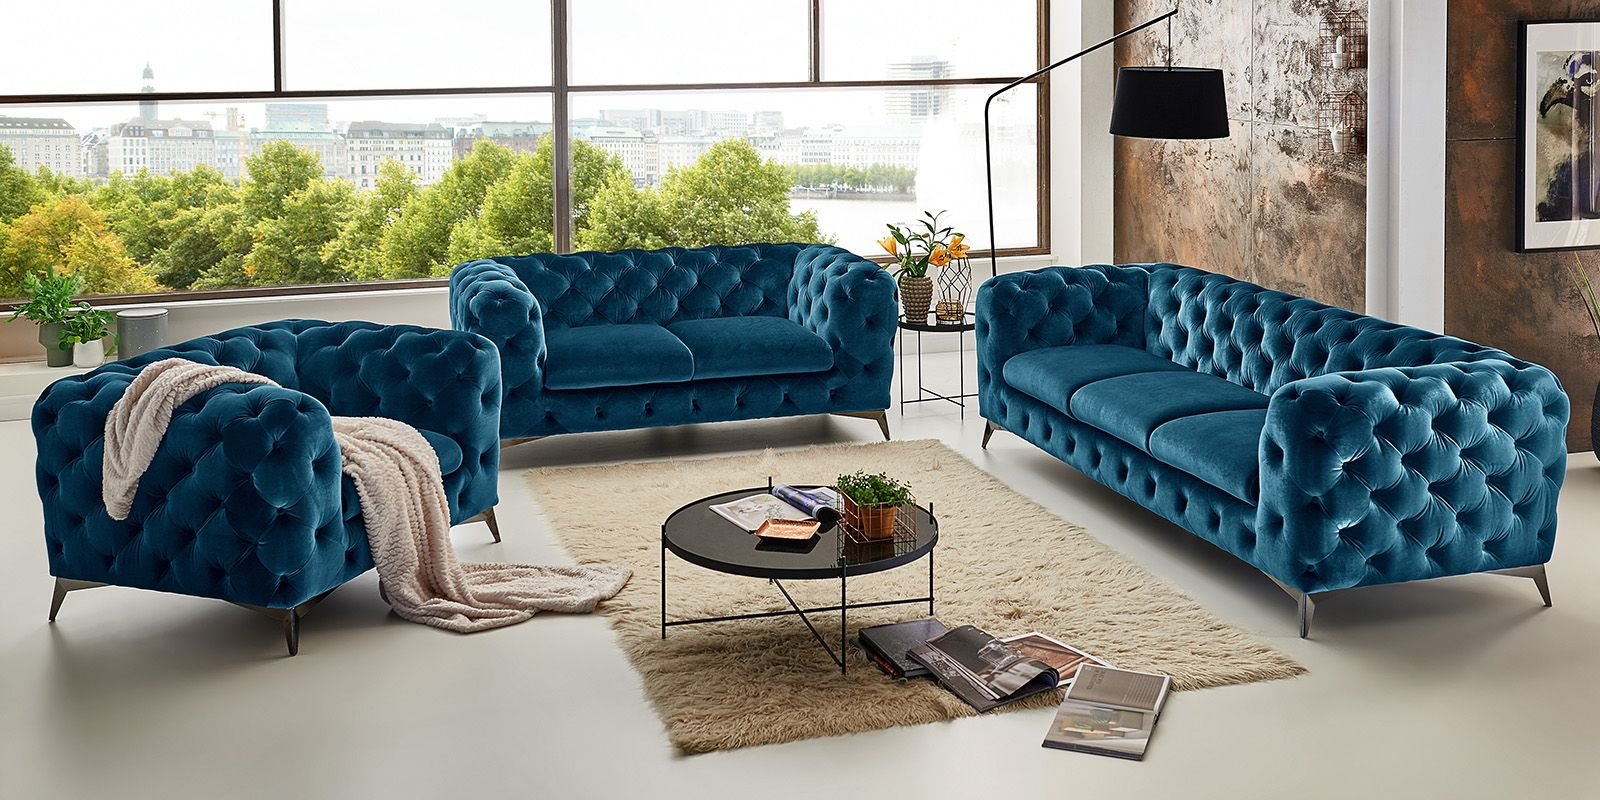 Chesterfield Sessel Samt 3 2 1 Sitzer Chesterfield Sofa Big Emma Samt Petrol Türkis